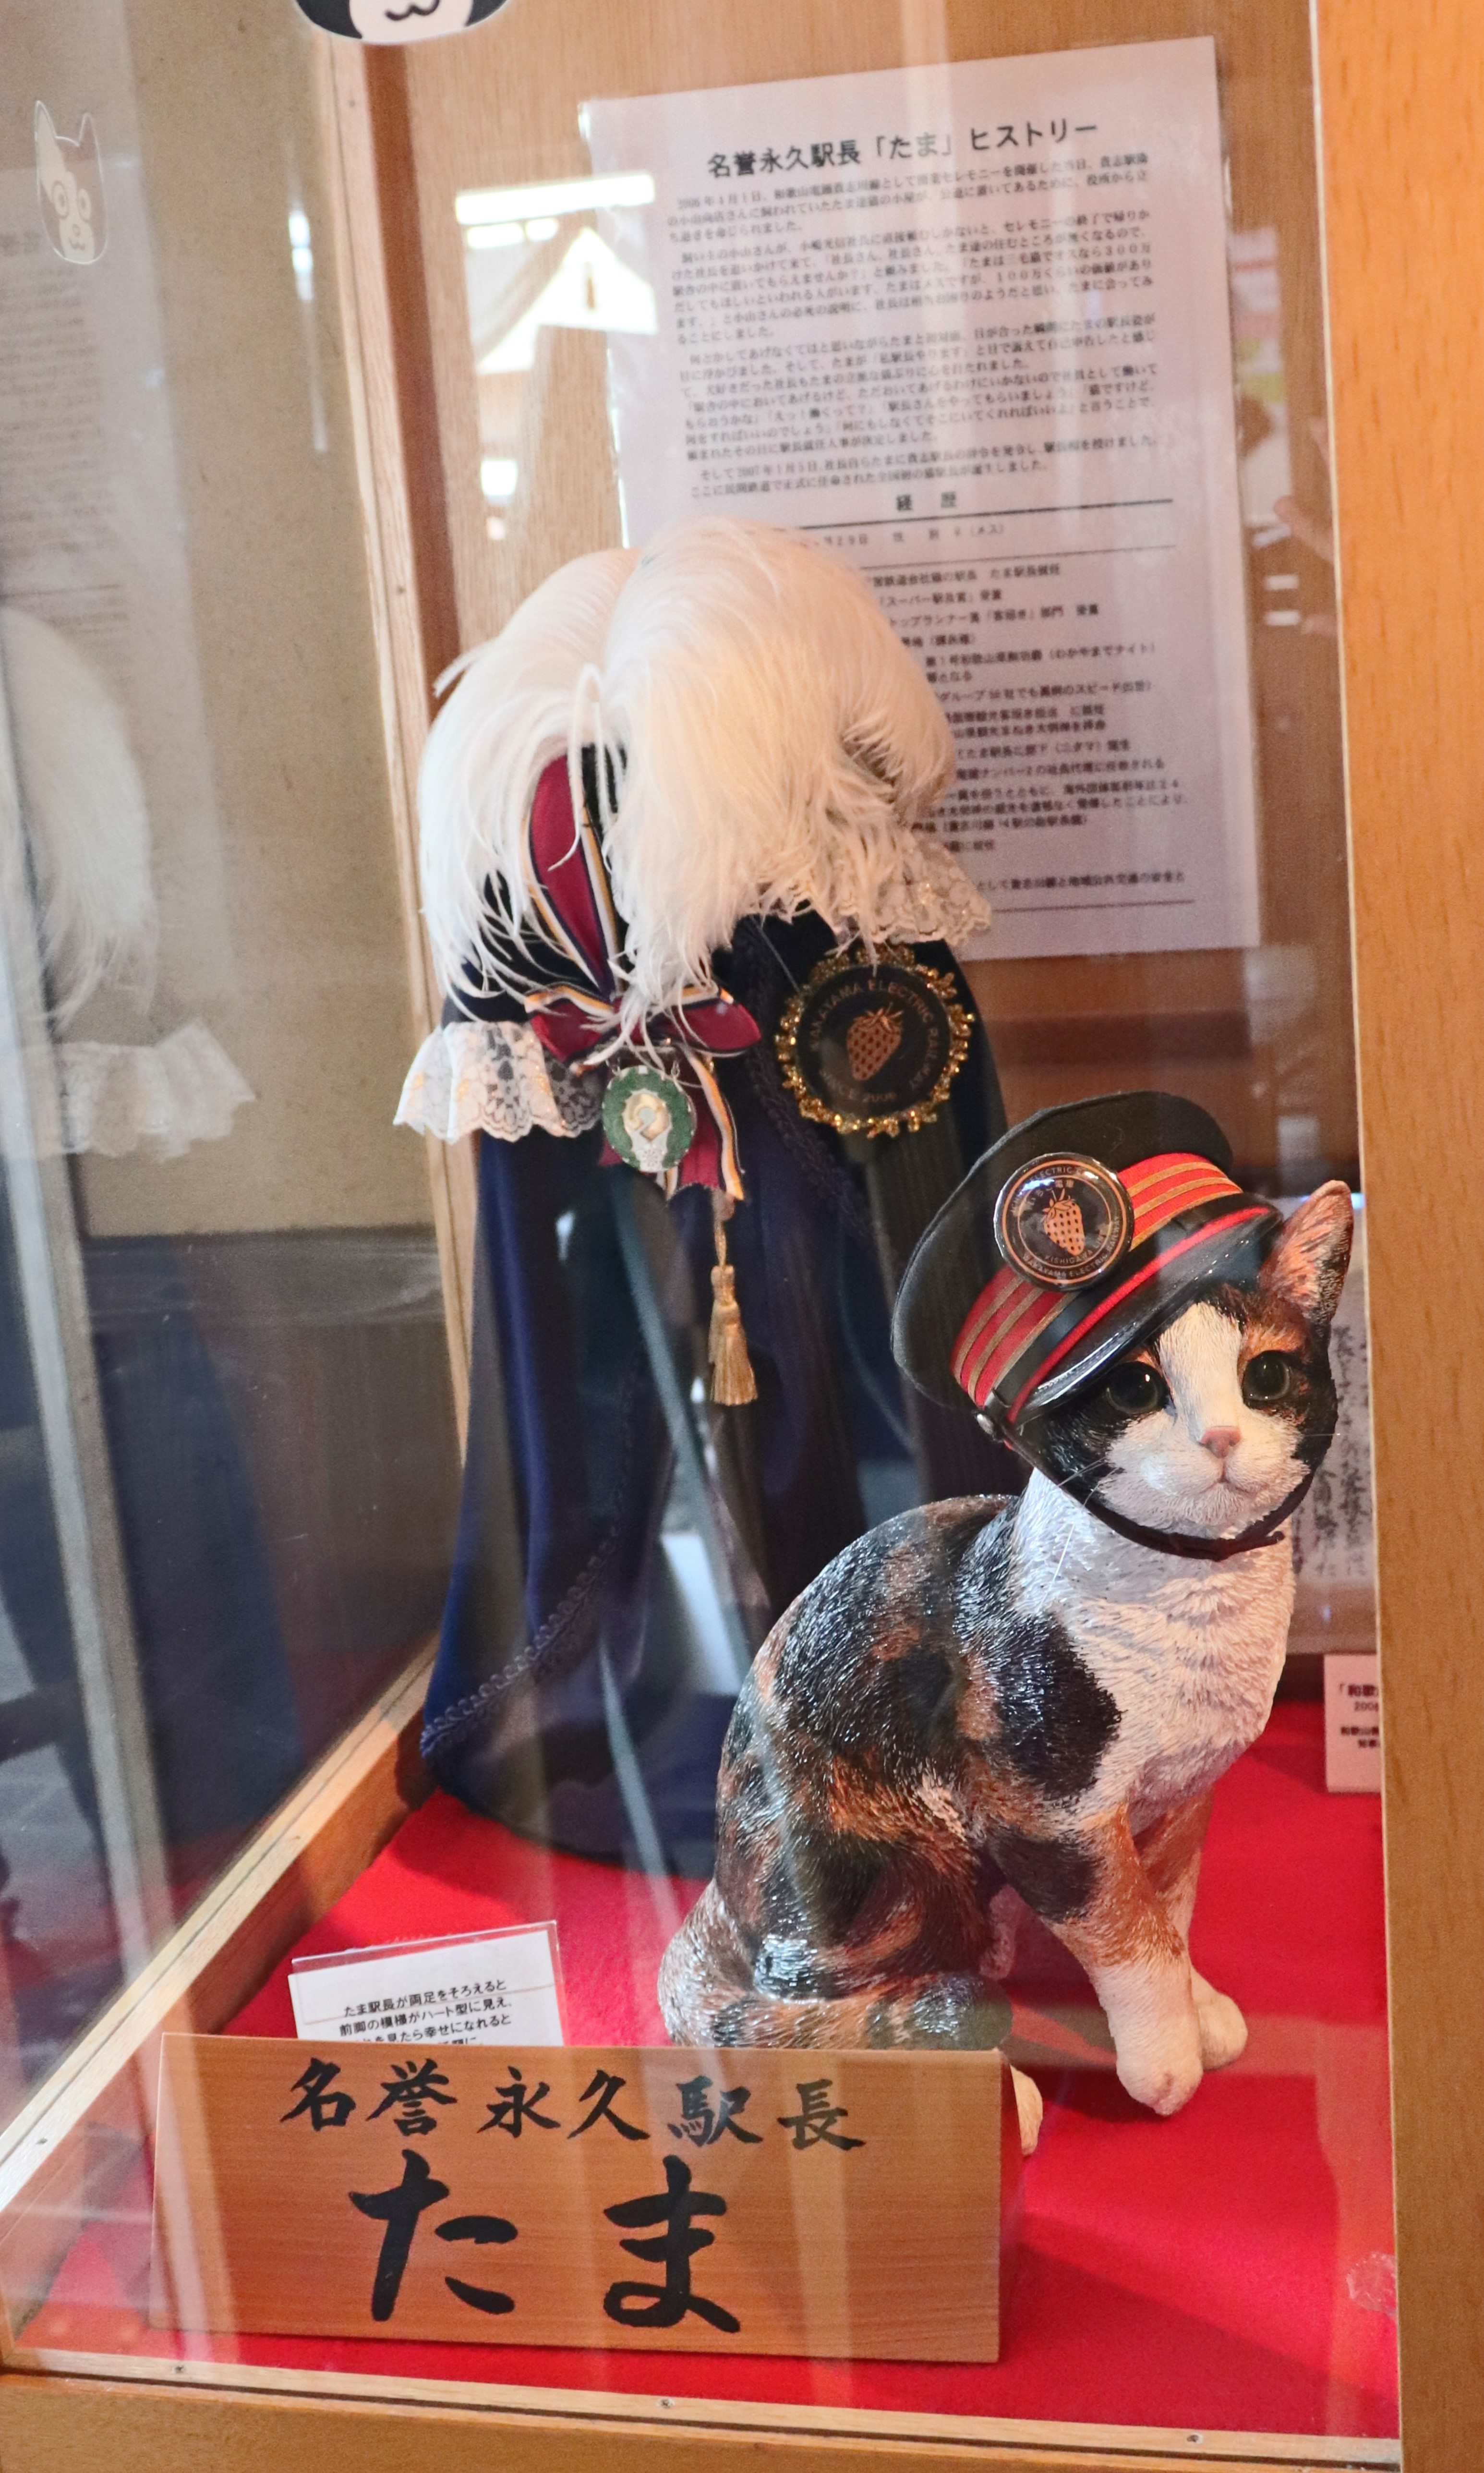 Display of Tama the cat at the Tama Cafe in Kishi Station.